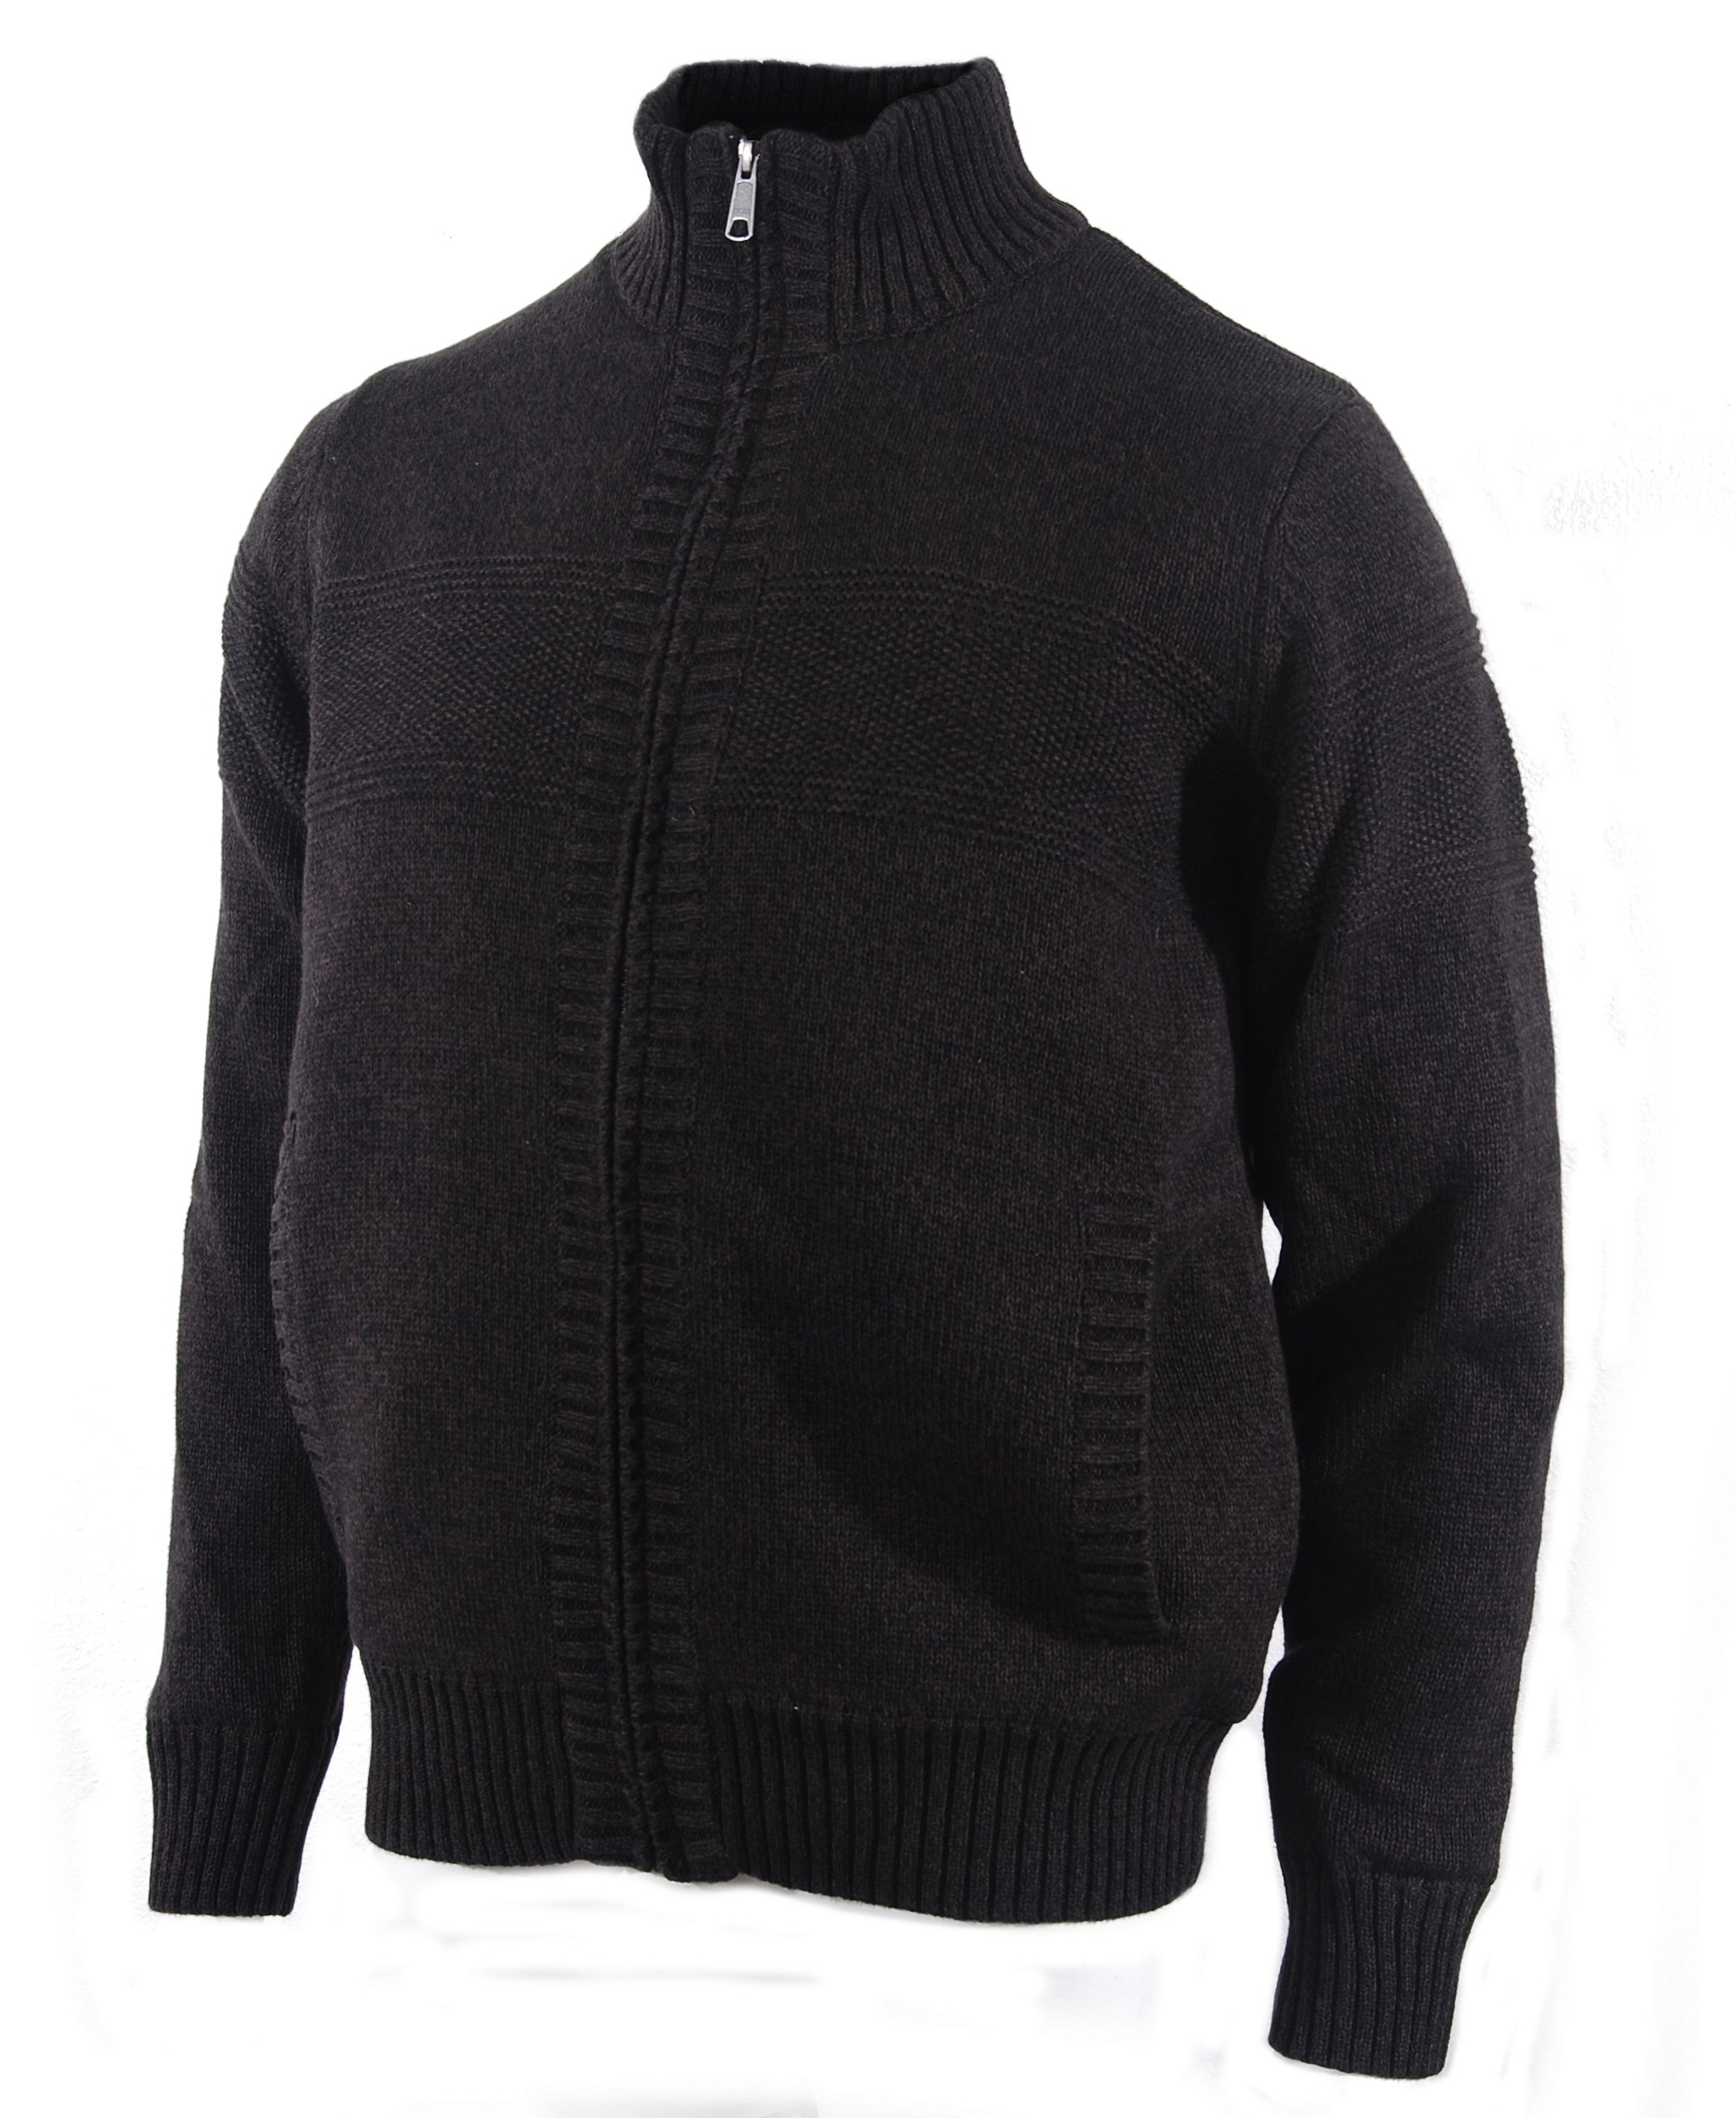 Boston Traders Men's Cable Knit Sweater with Sherpa Lining, Chocolate, Medium